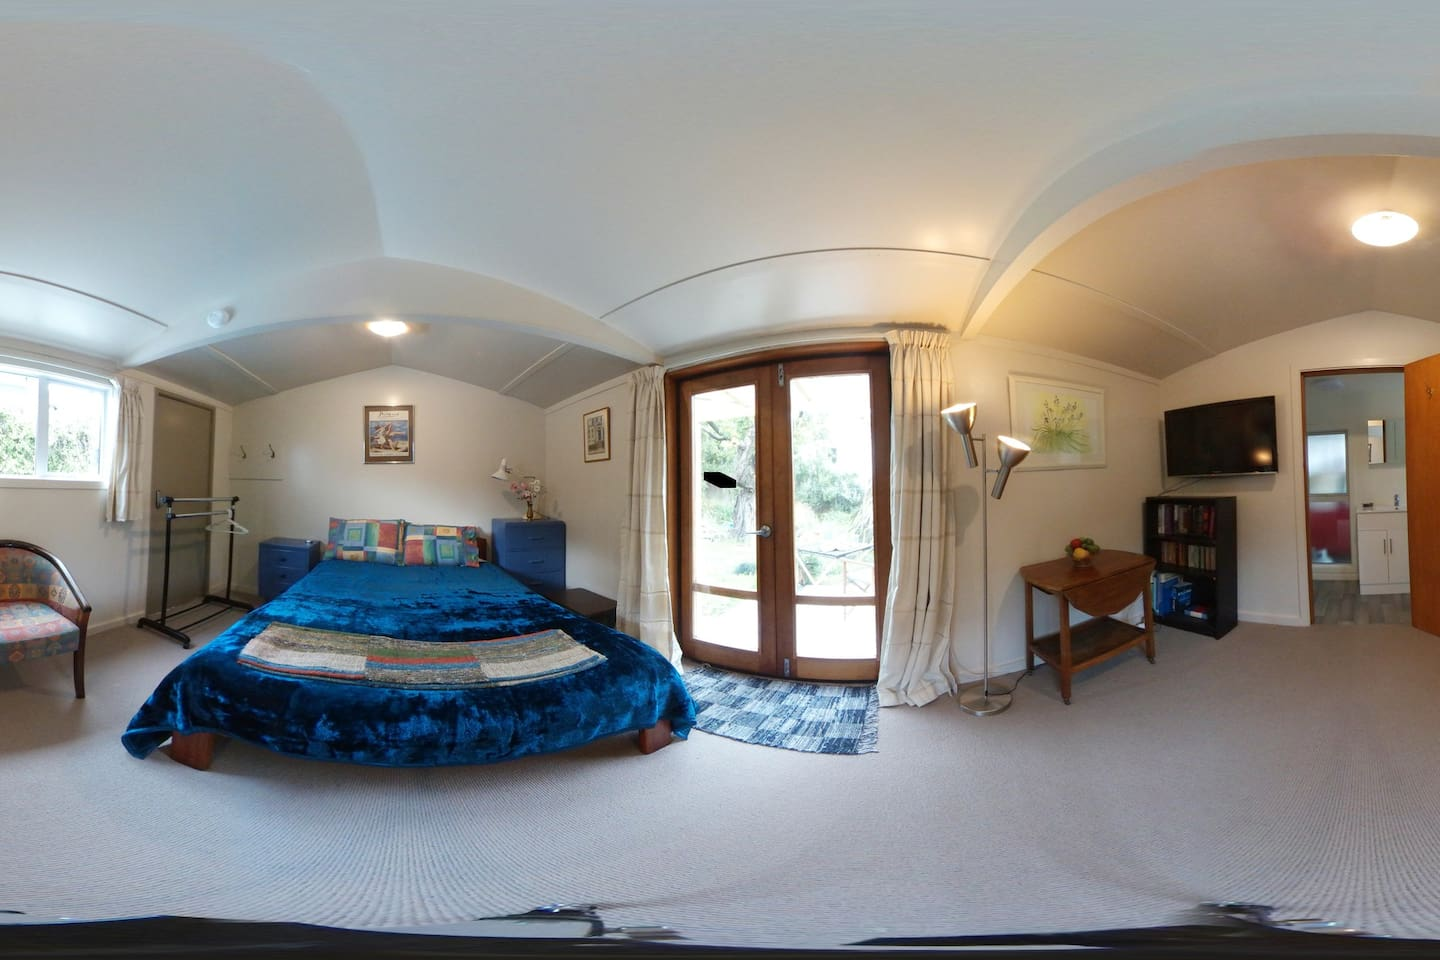 180 degree view of the living space